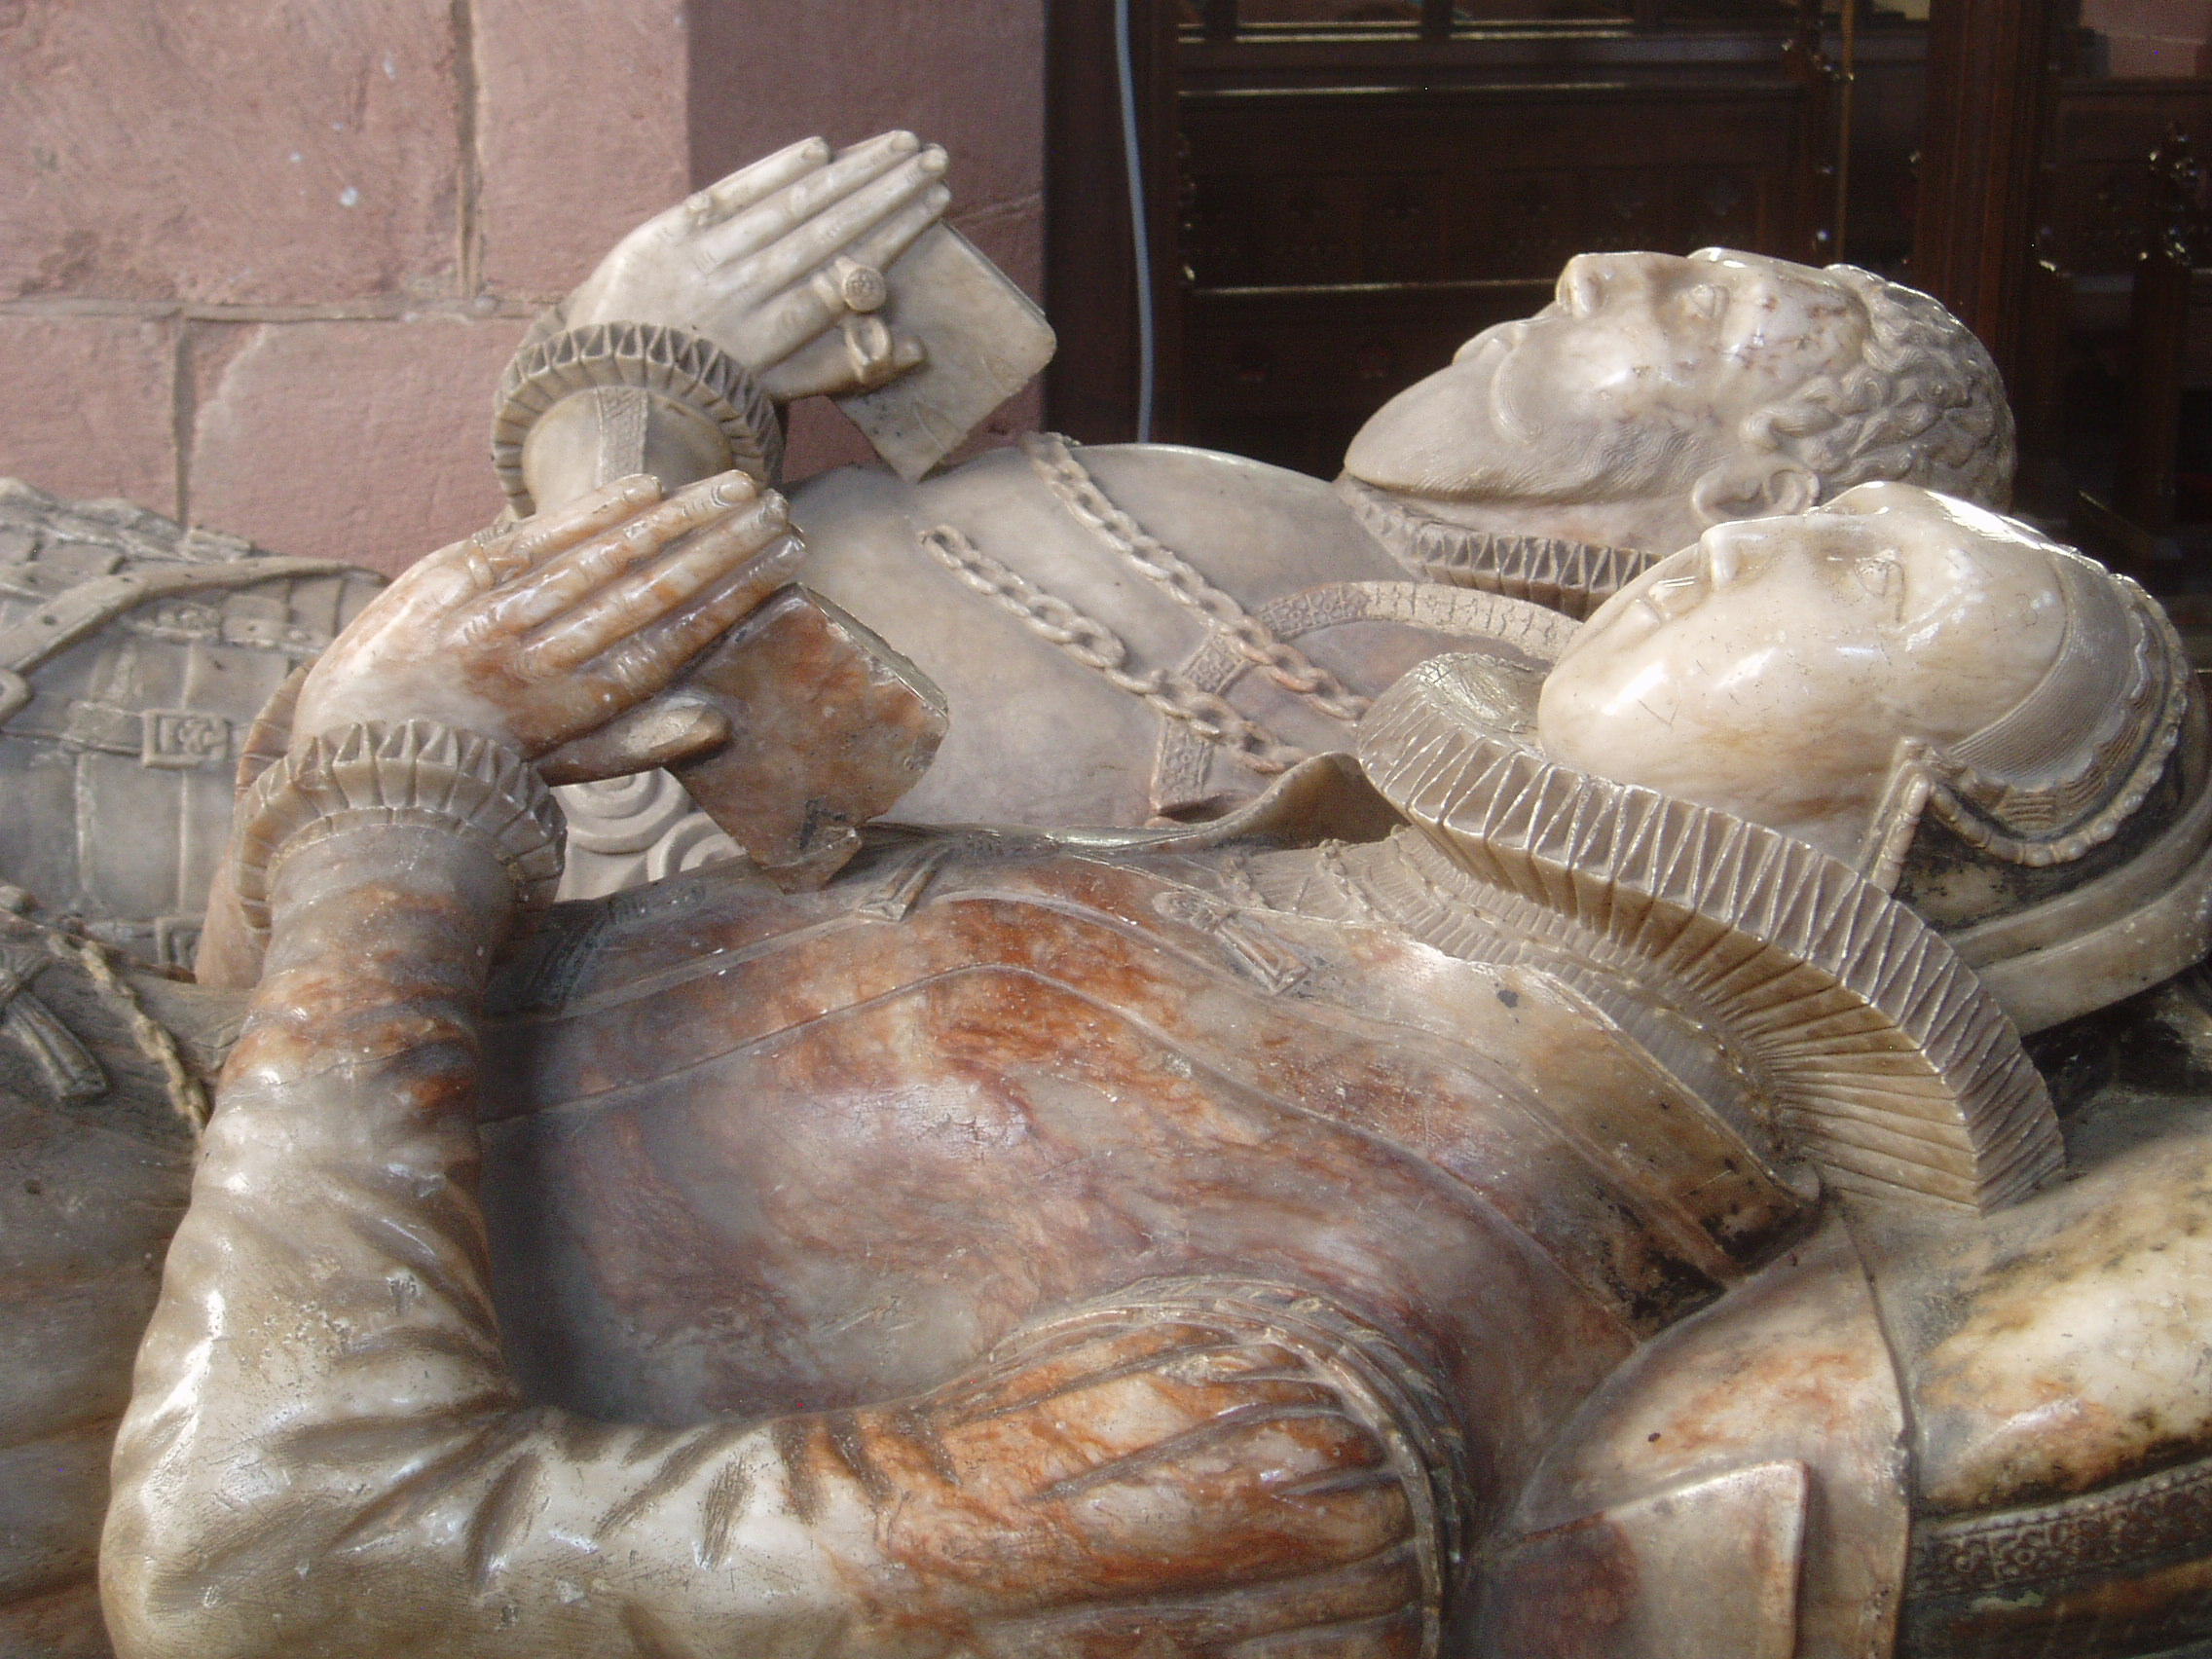 1580 - Fielding tomb - St Edith's at Monk's Kirby